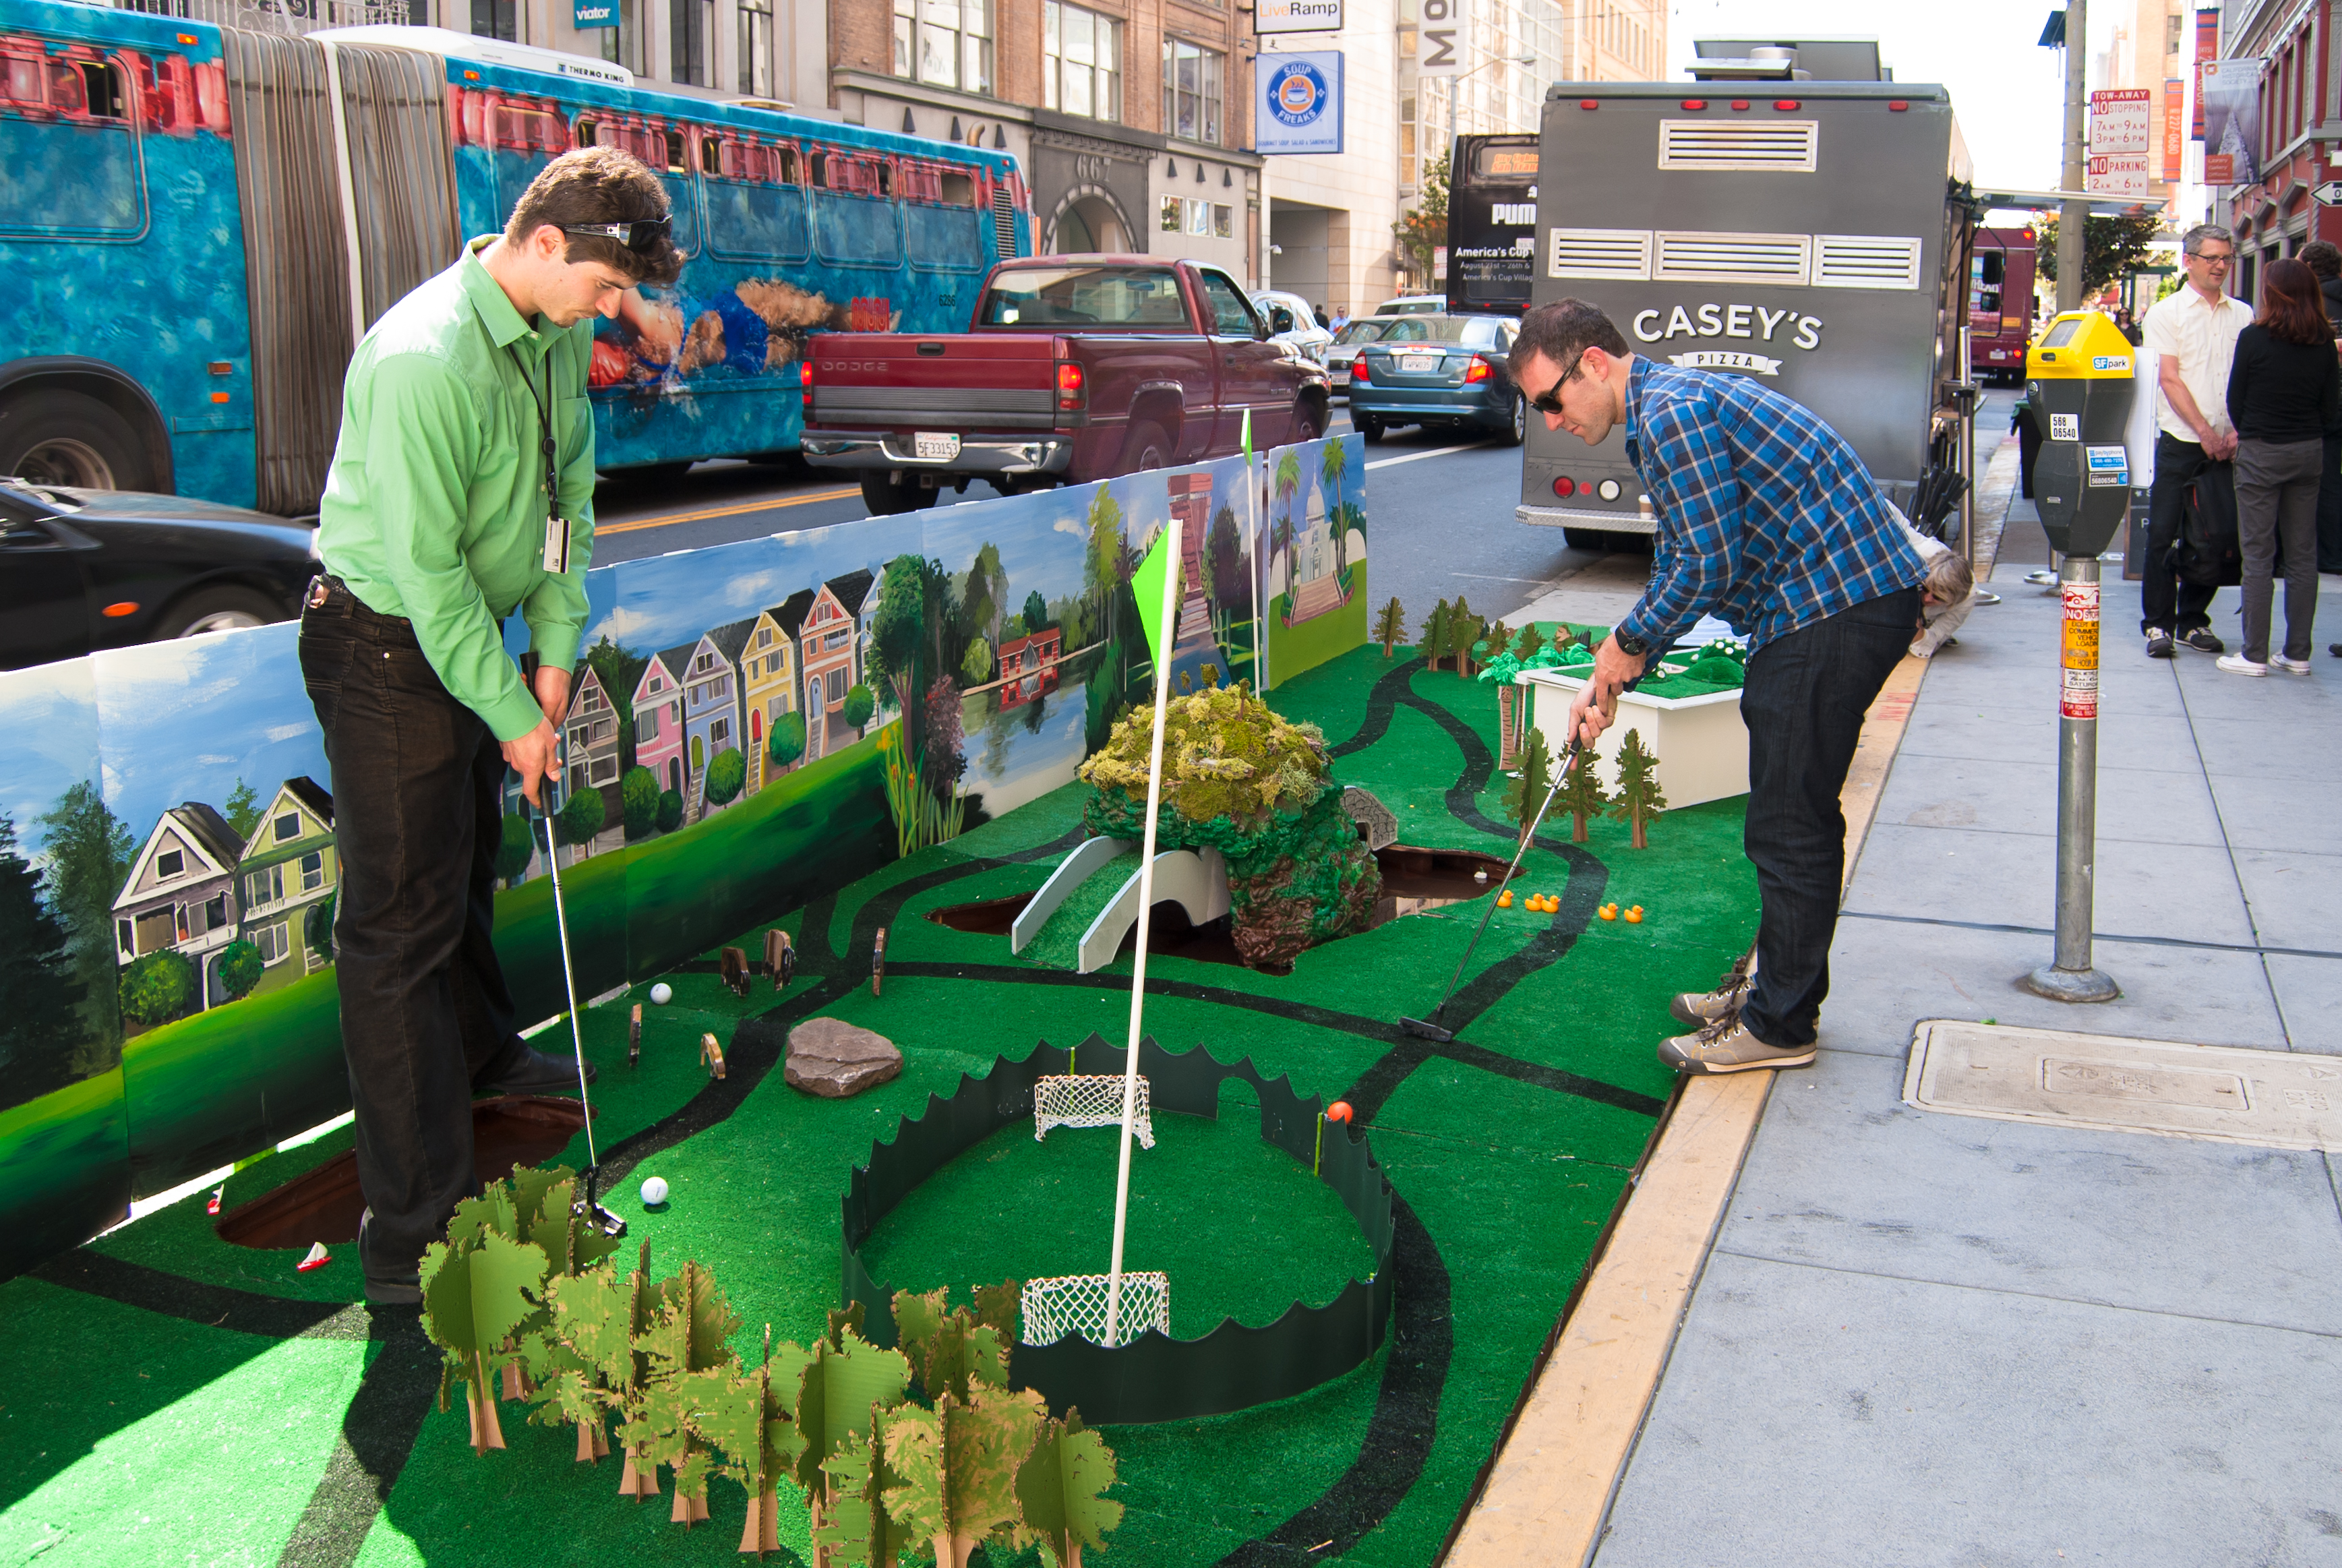 Golden_Gate_parklet_2012_credit_Sergio_Ruiz_thumb.jpg